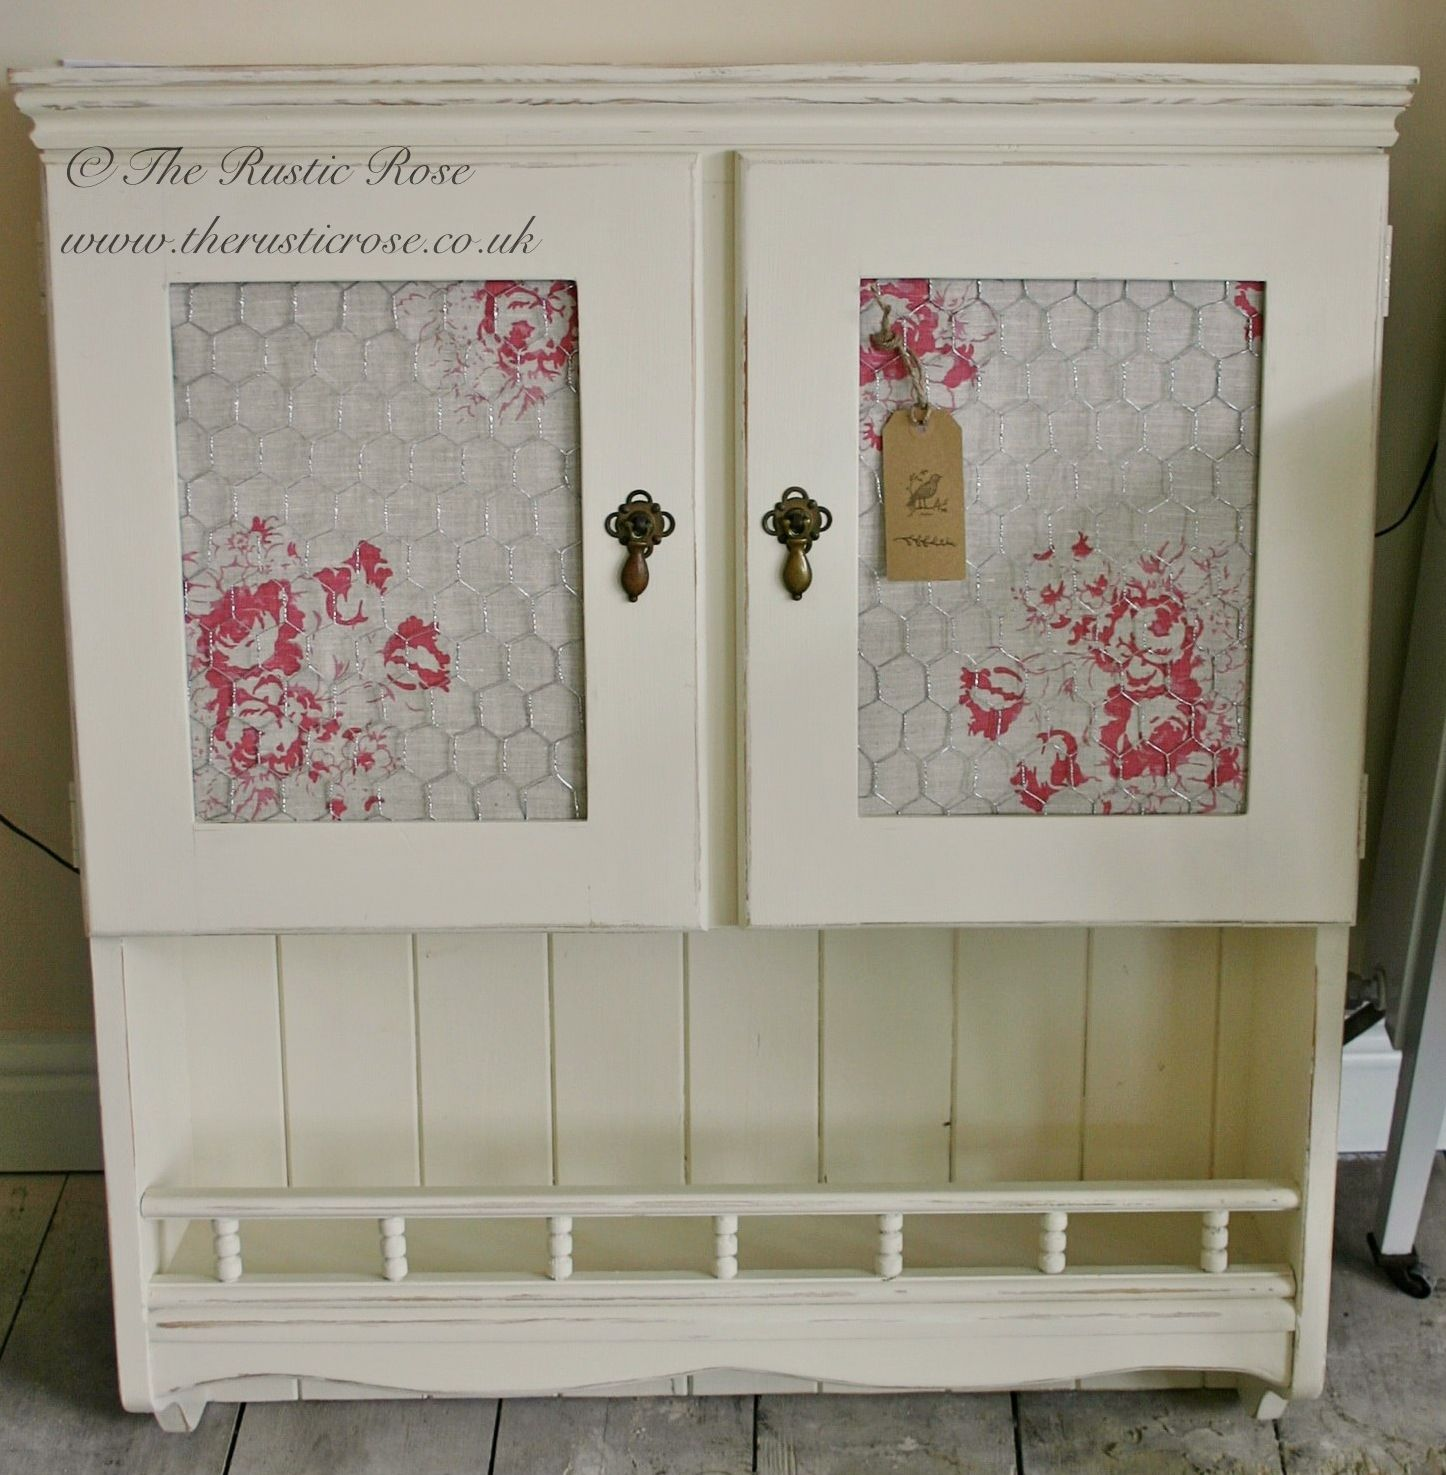 Wall cabinet with cabbages and roses fabric behind chicken wire guest bath storage